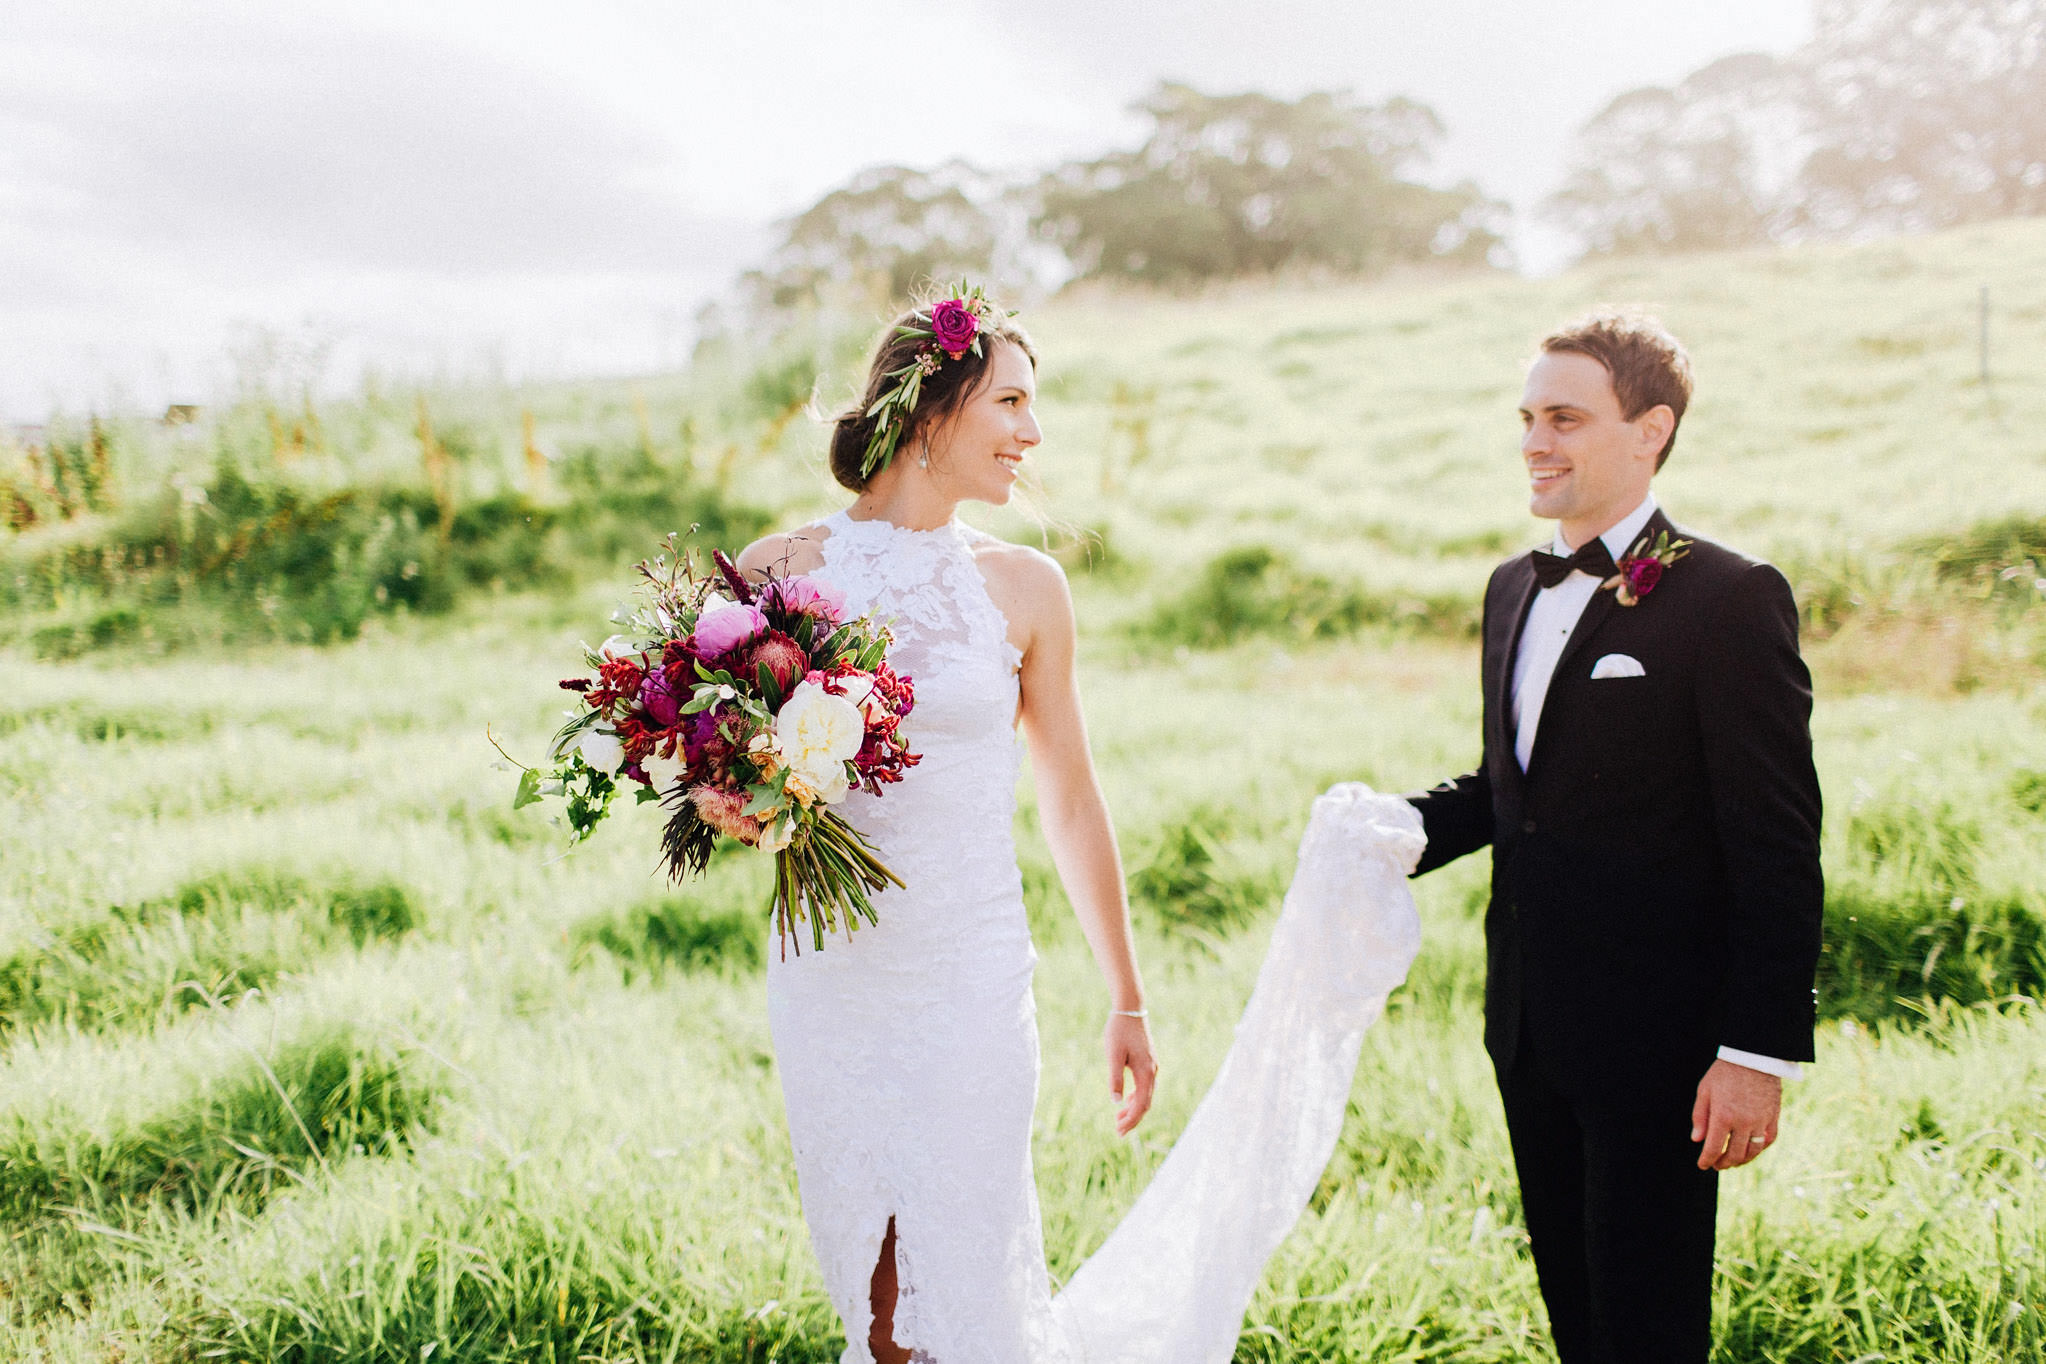 TocalHomestead_WeddingPhotography_LaurenAnnePhotography-1106.jpg